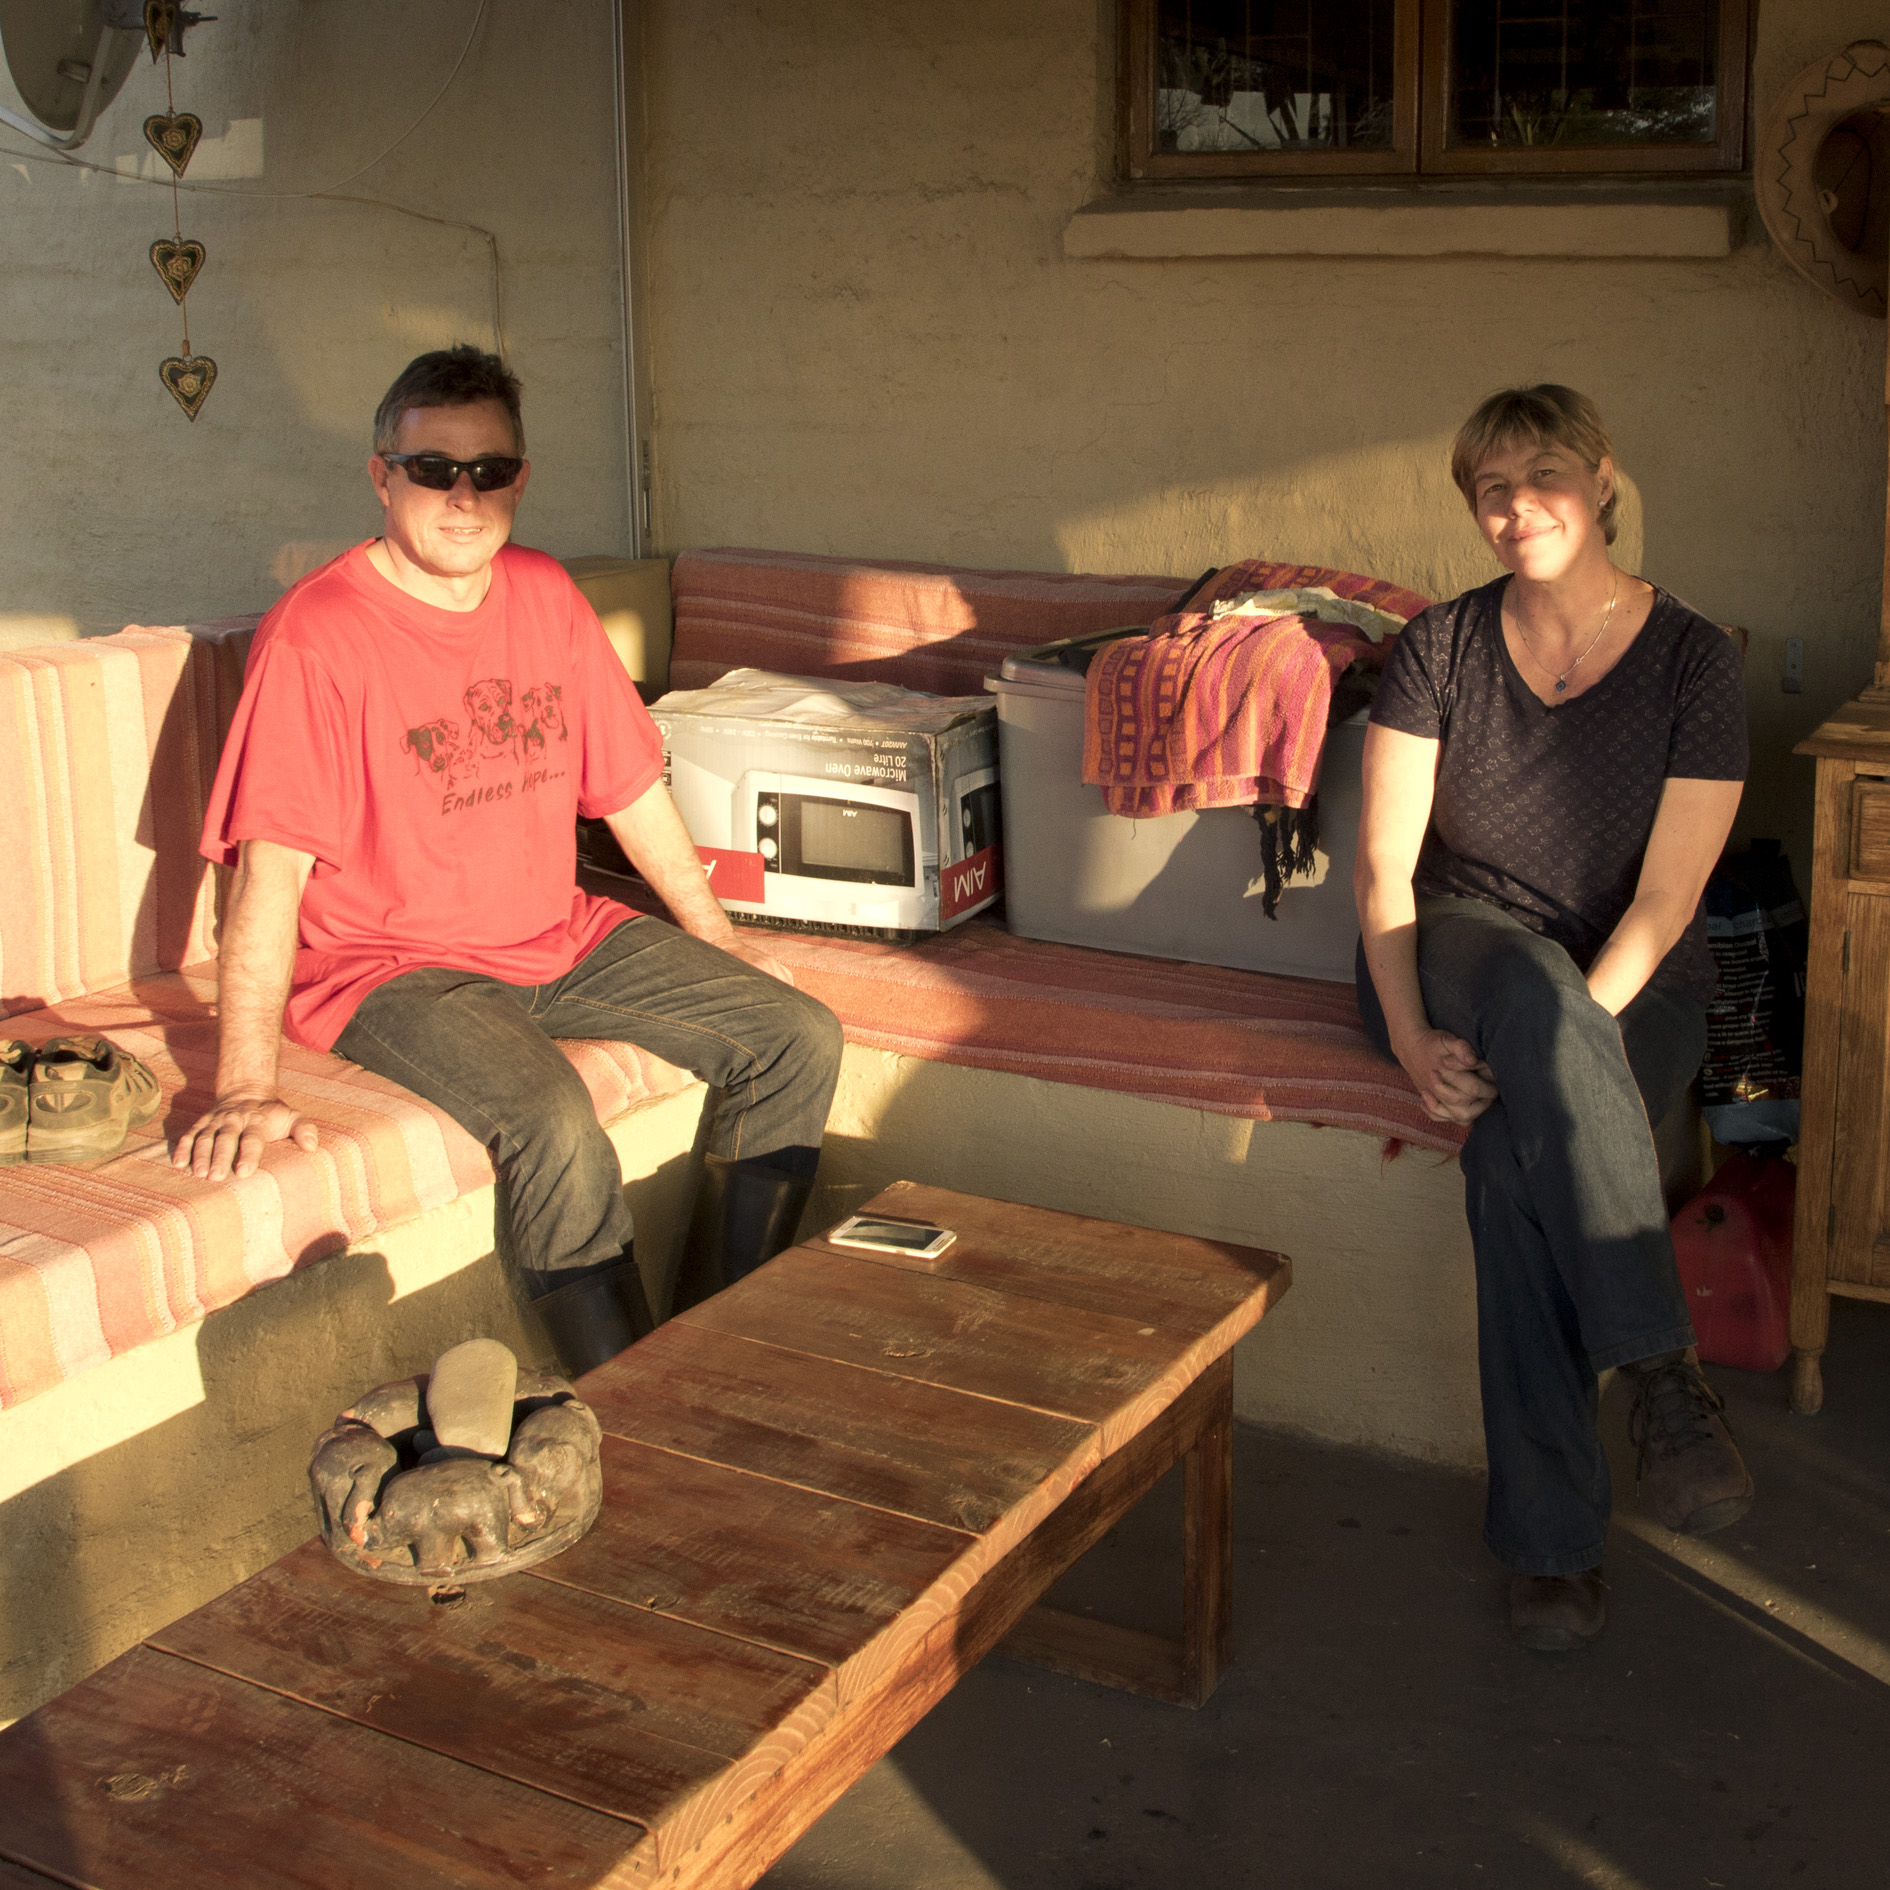 Jaco and Sofia Combrink sitting next to the owl chicks in the boxes